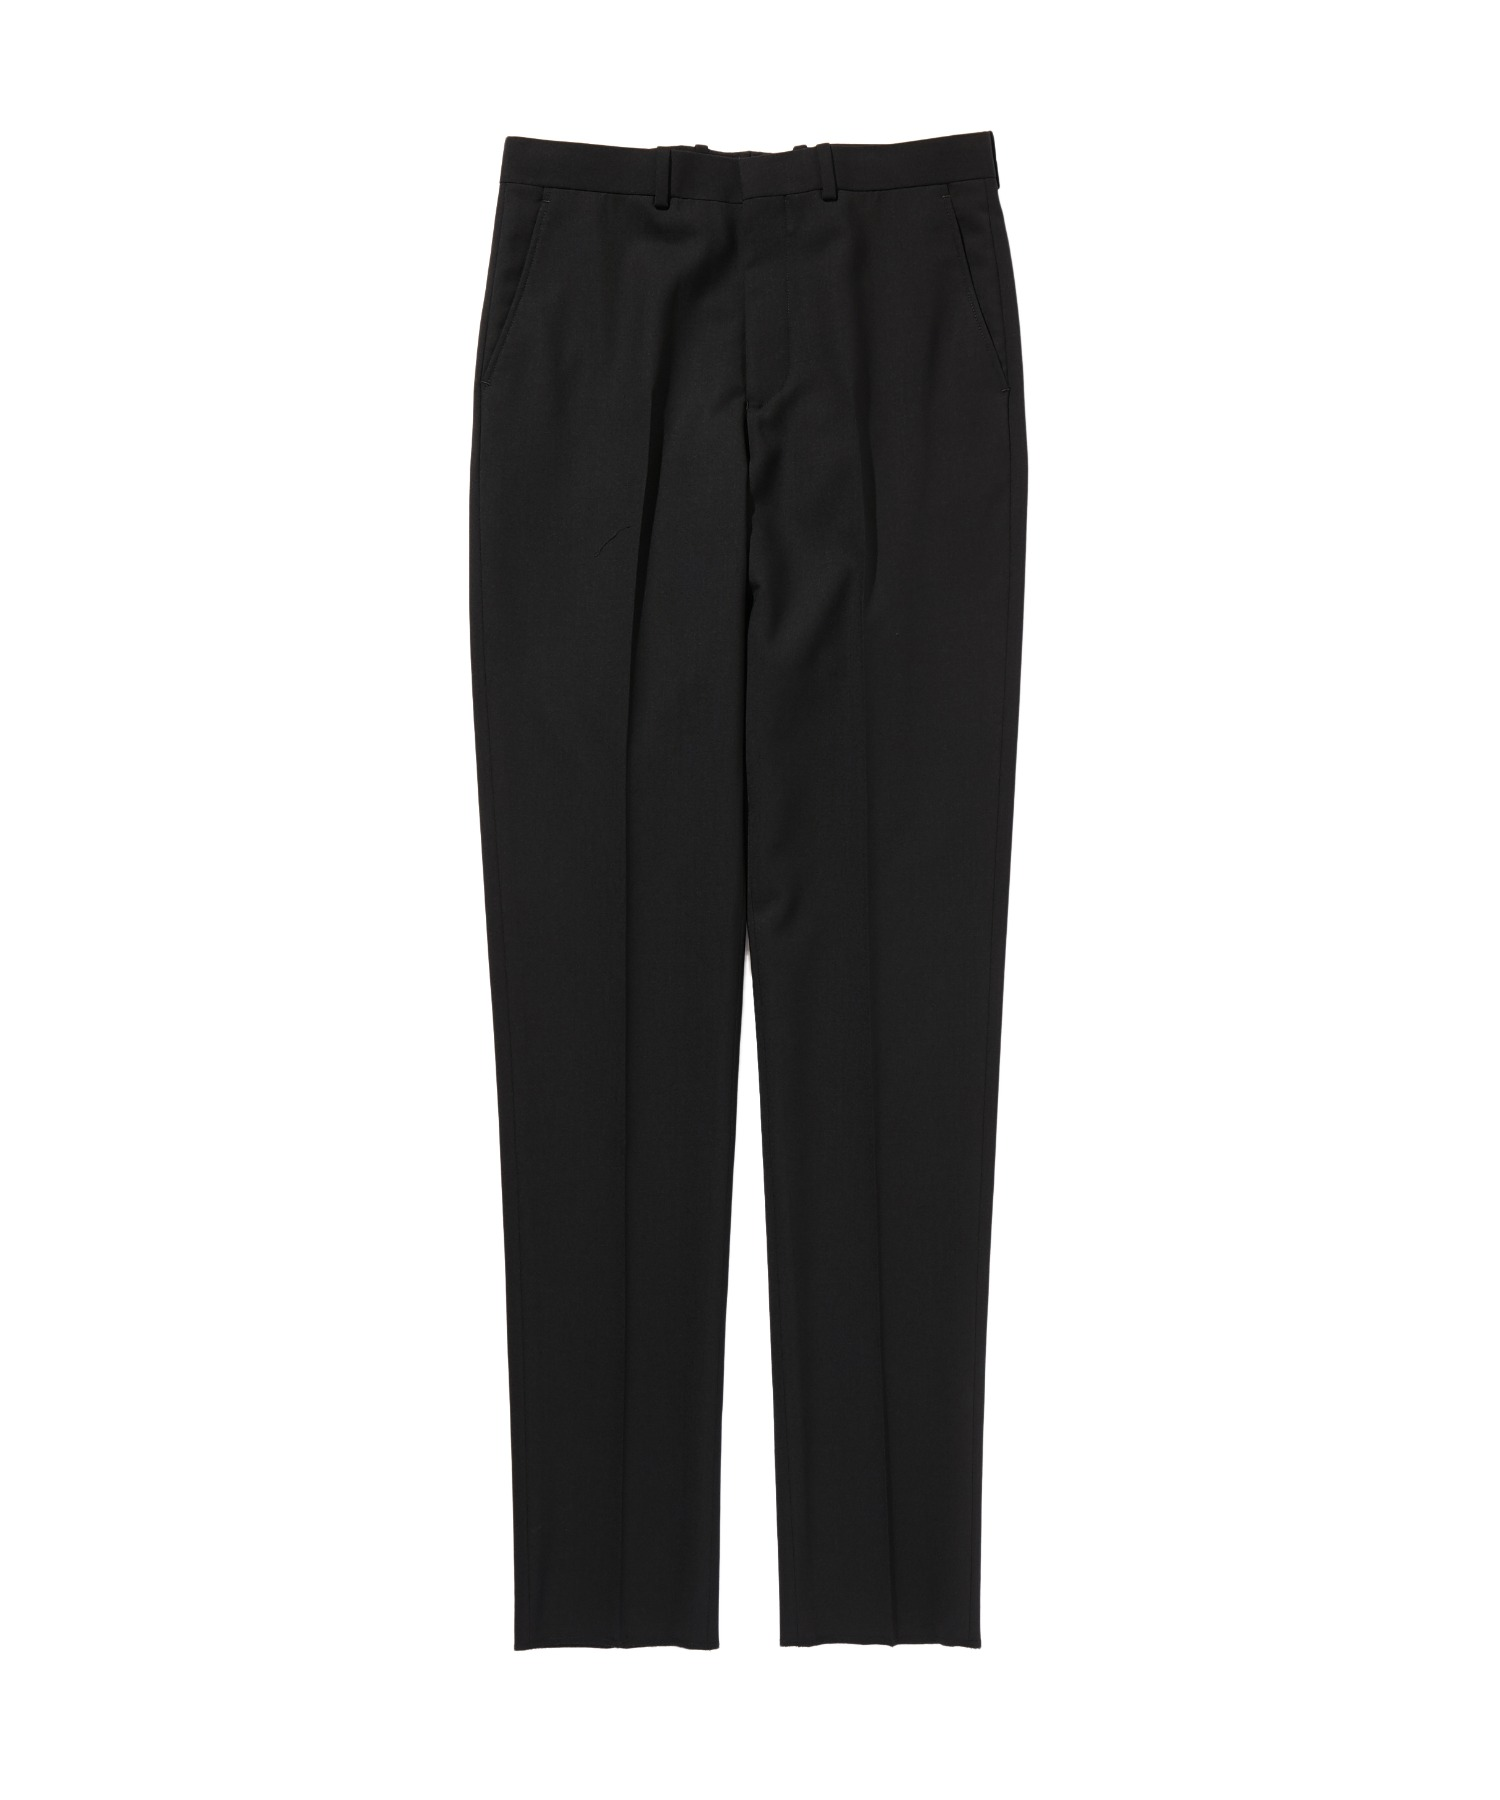 SPRING SLIM TAPERED SLACKS